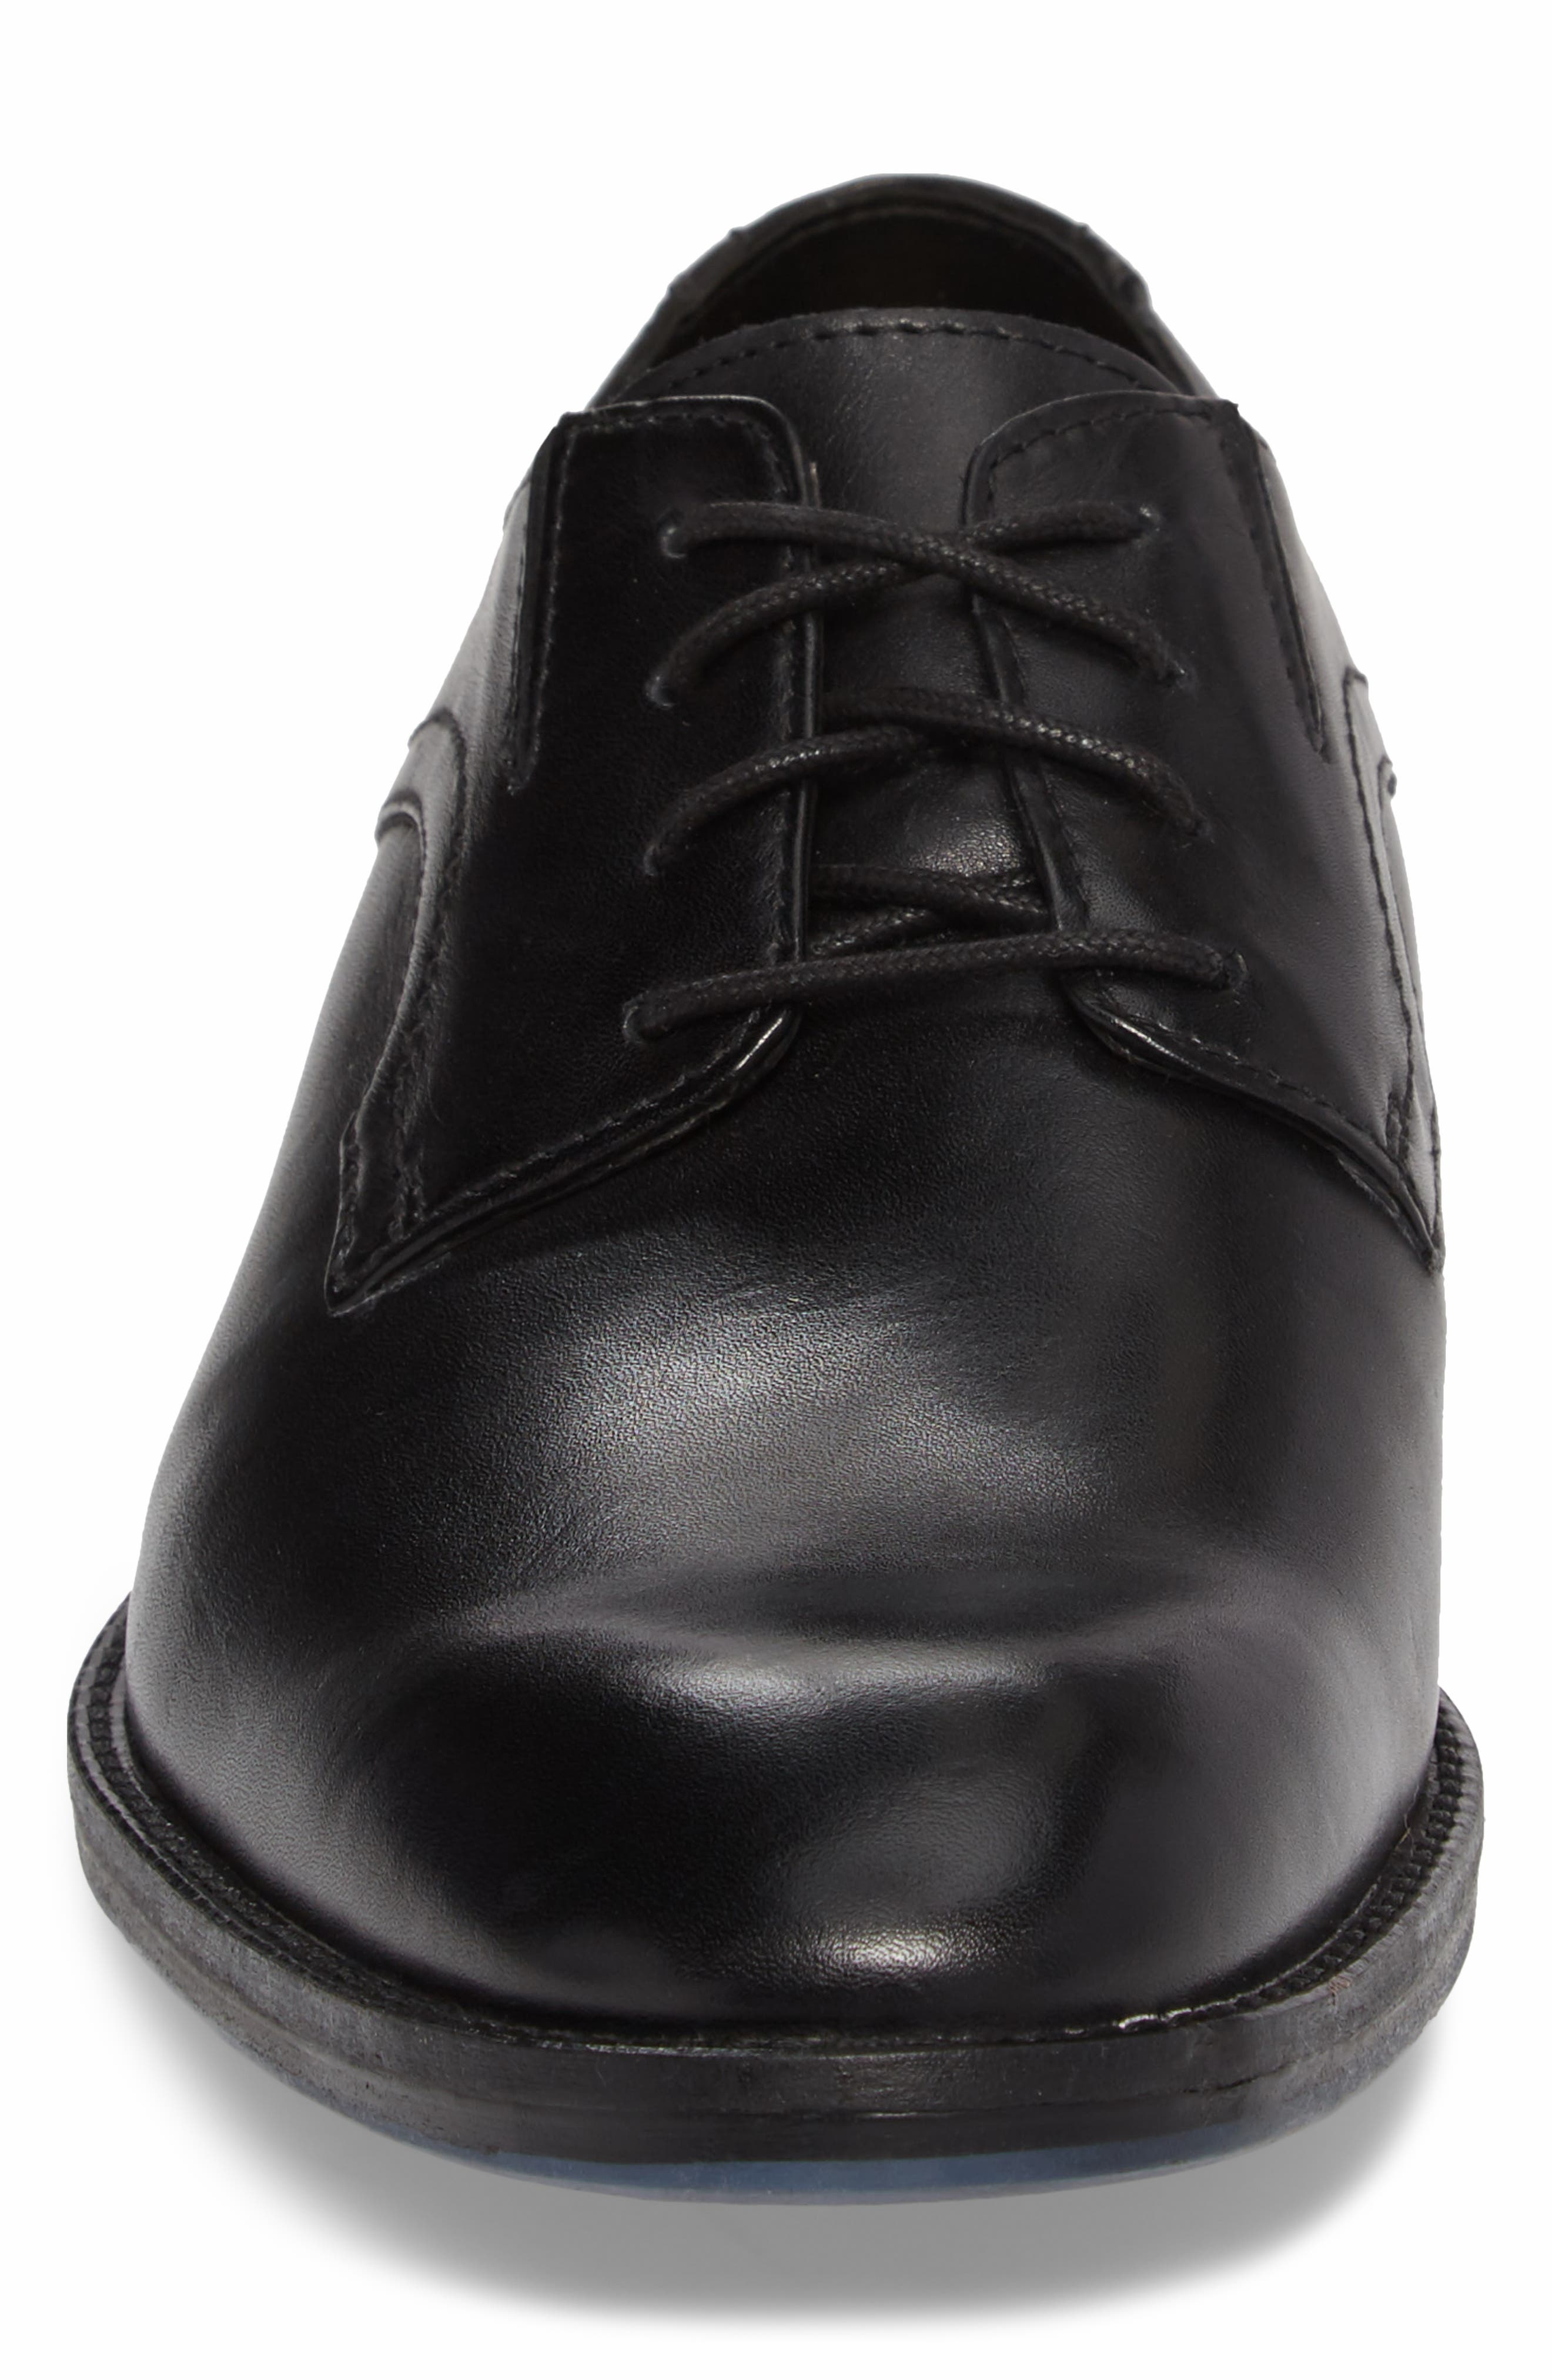 Clarks<sup>®</sup> Prangley Walk Plain Toe Derby,                             Alternate thumbnail 4, color,                             Black Leather